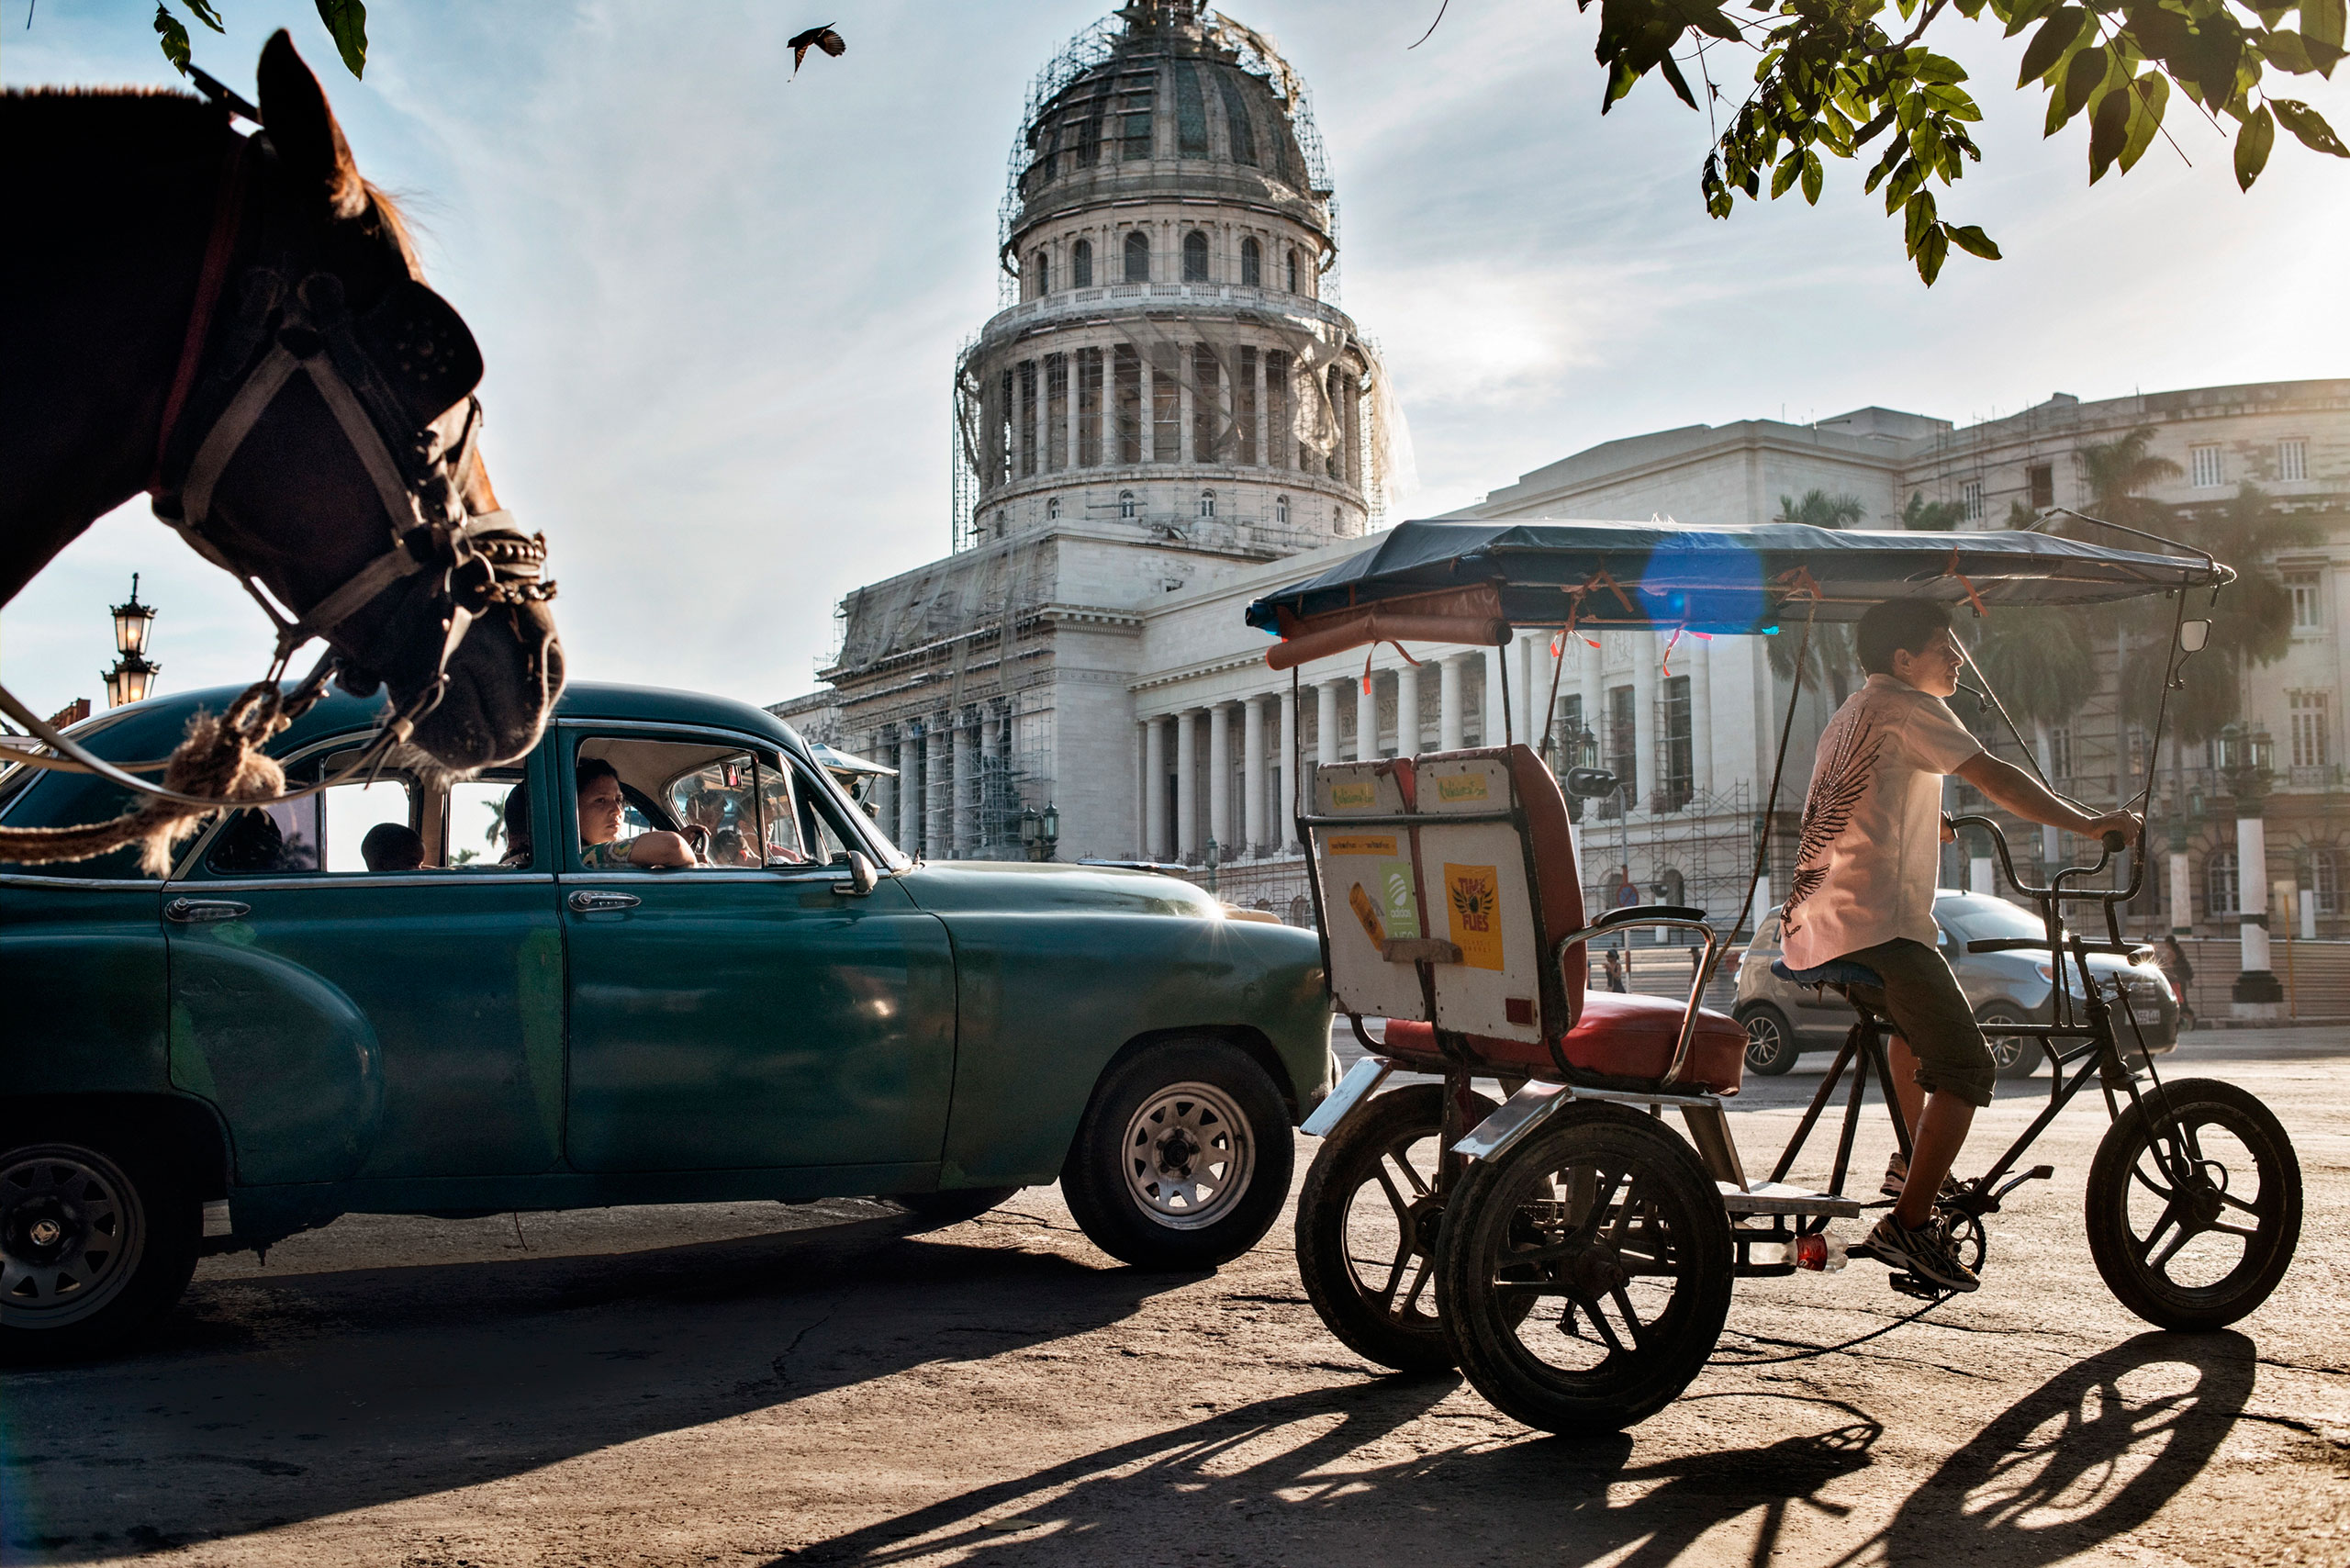 The National Cuban Capitol Building in Havana is seen during restoration work.From  Take a Walk Through the Streets of Cuba